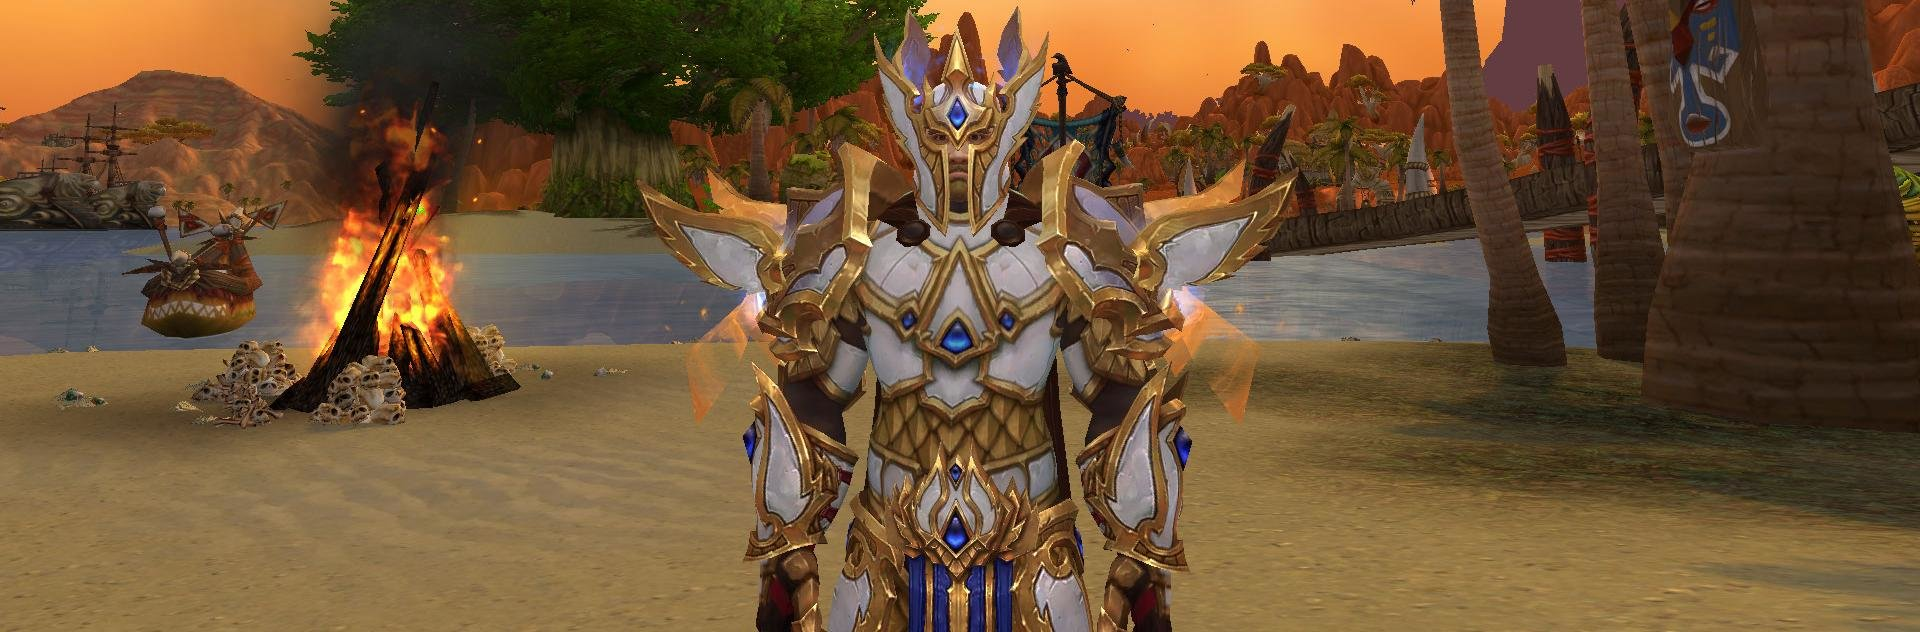 31901-patch-73-tier-21-paladin.jpg